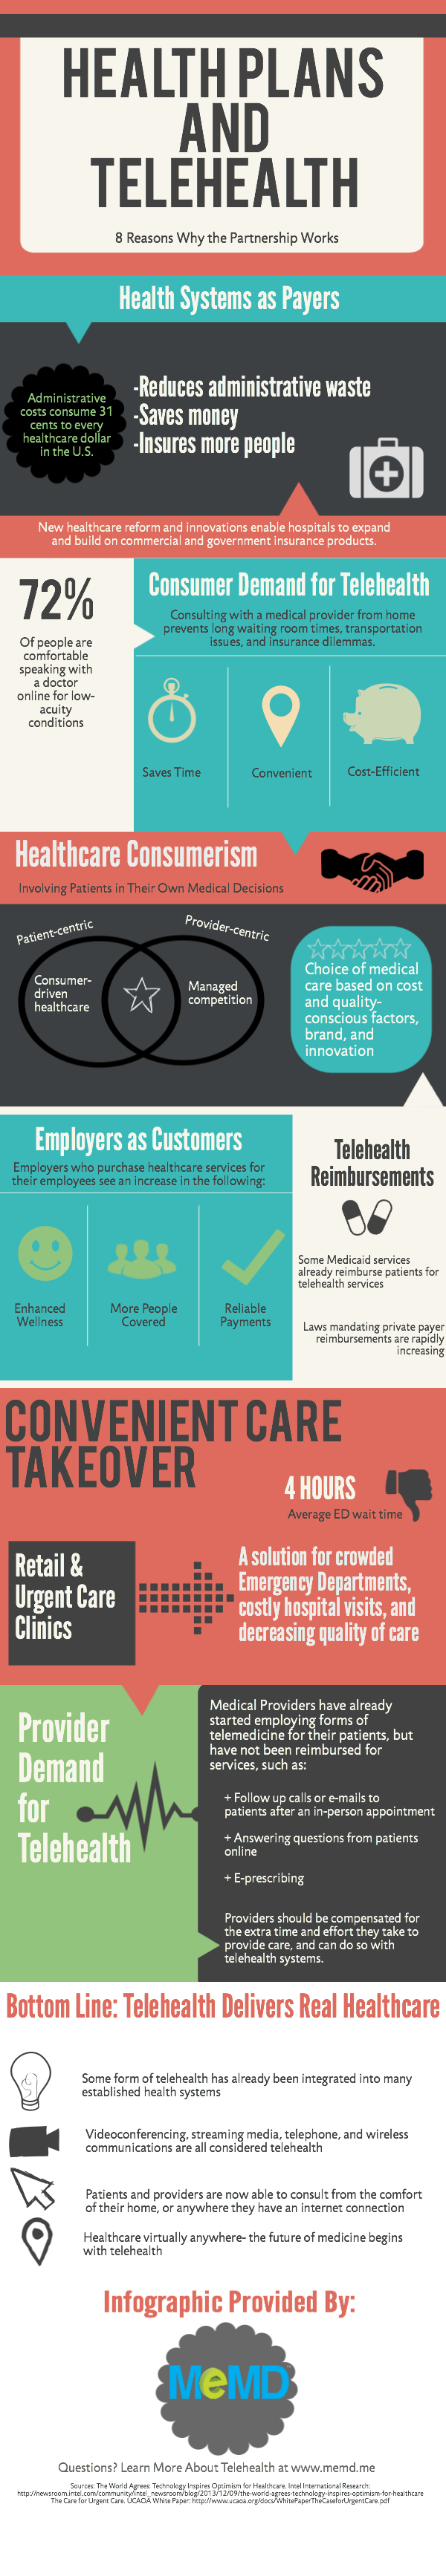 Health Plans and Telehealth [Infographic]